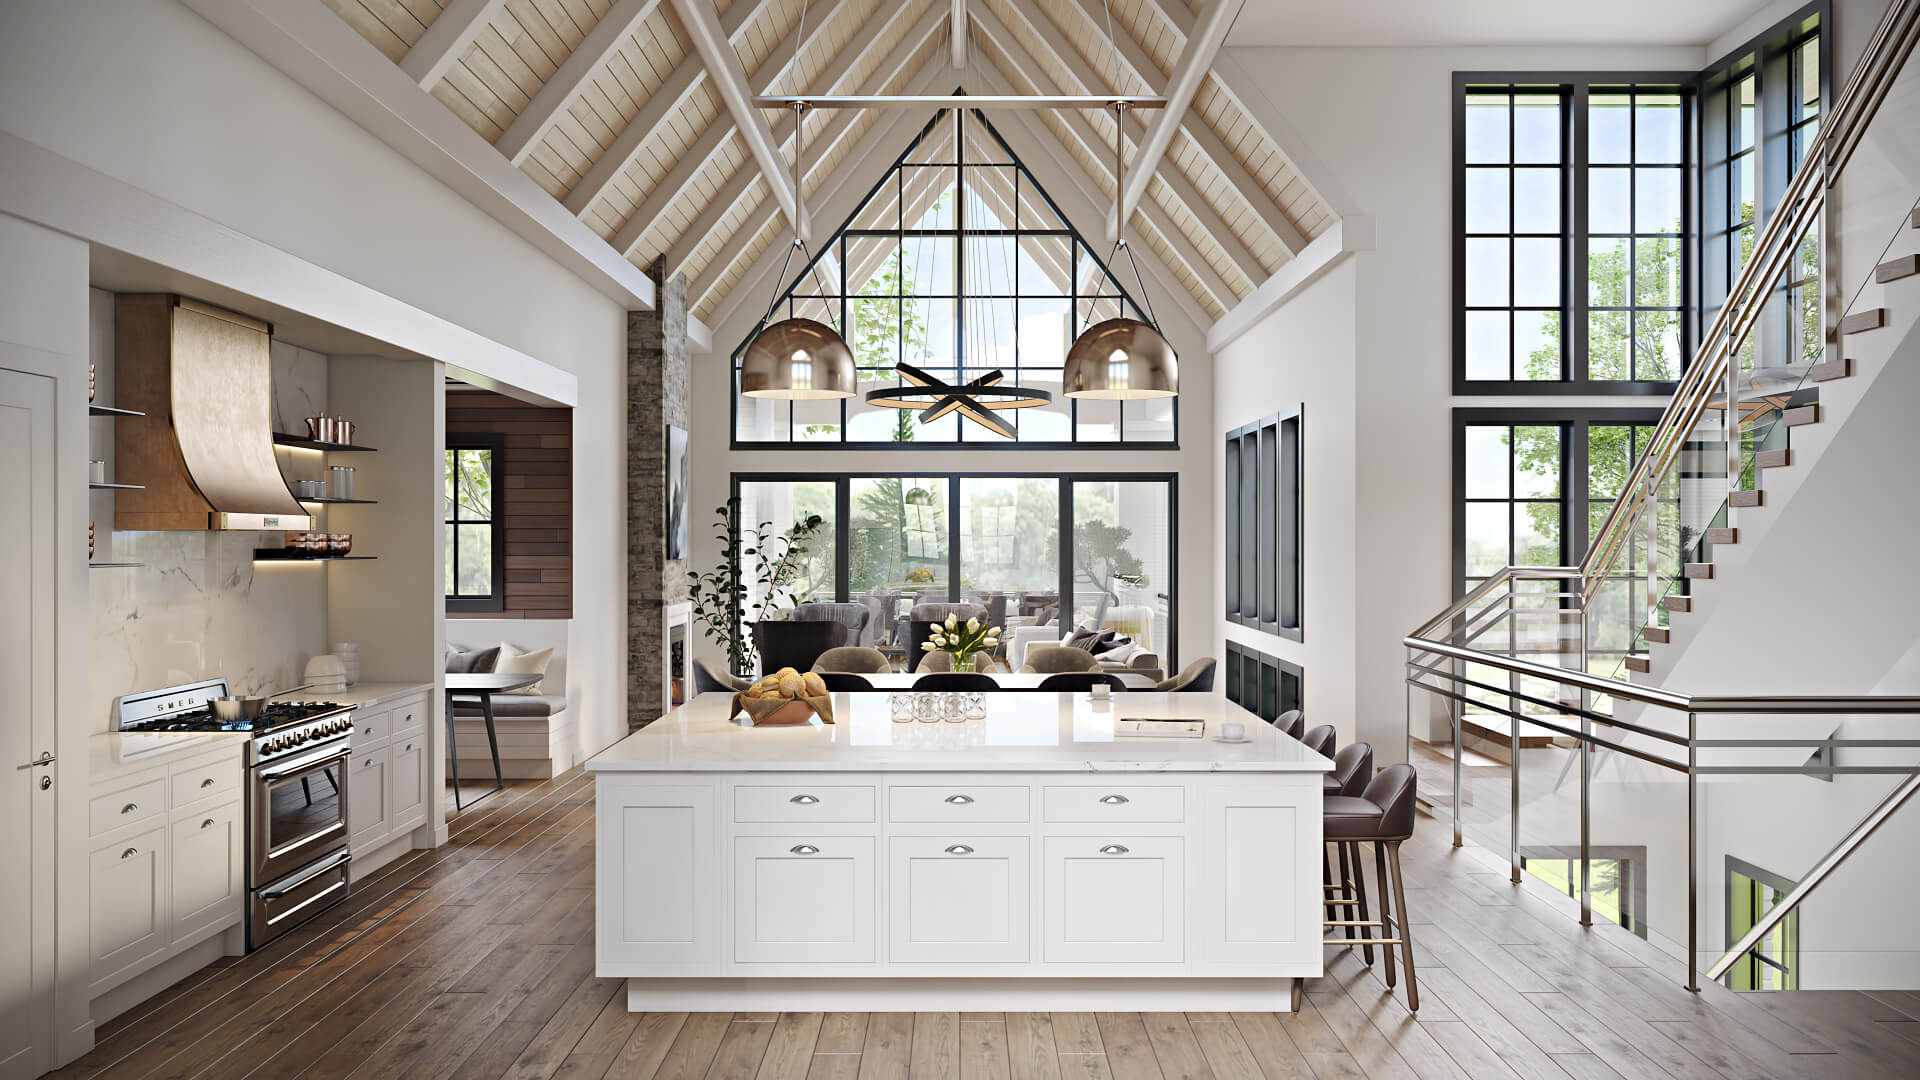 CGI of a Kitchen in the Style of Modern Farmhouse